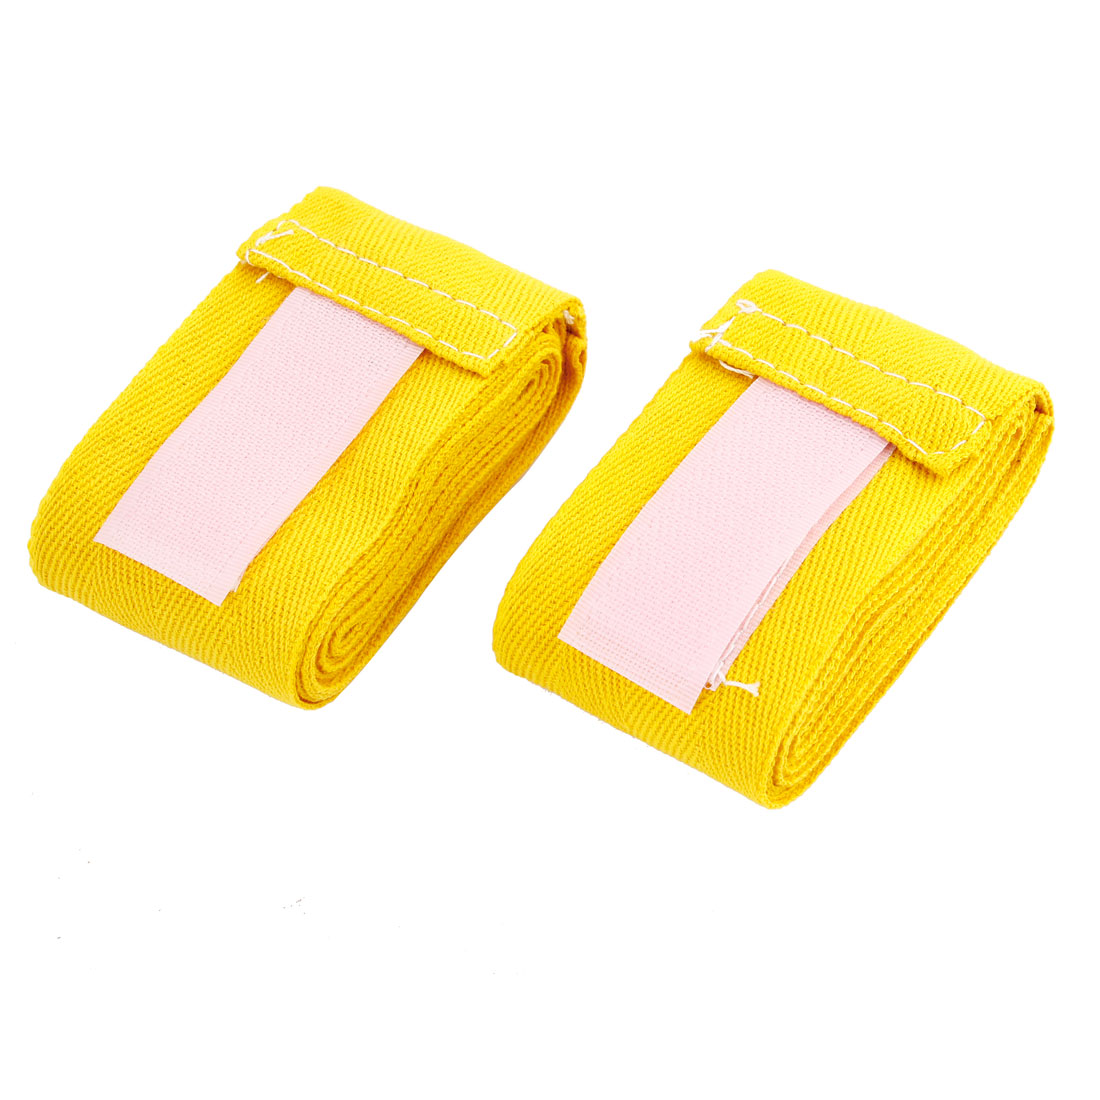 Pair Yellow Sports Boxing Hand Wrap Wrist Supporter Bandages 214cm Length